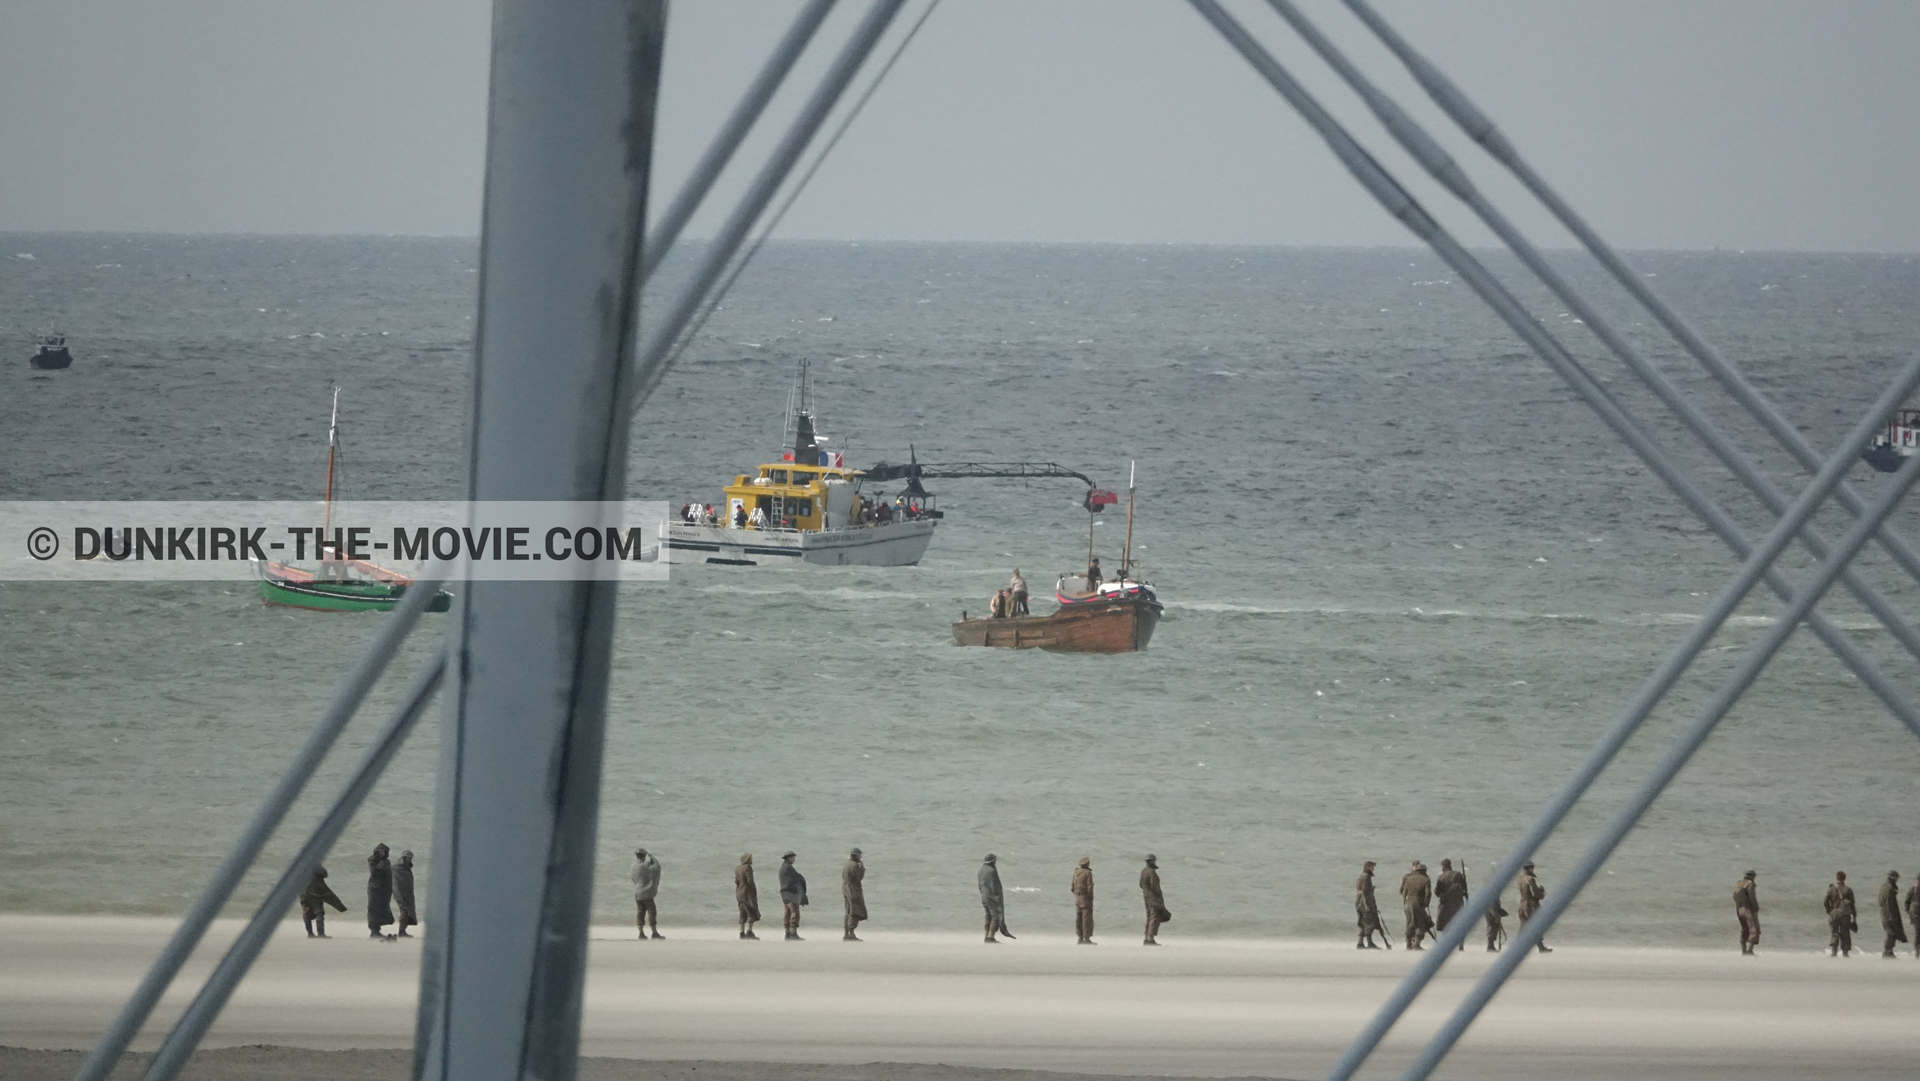 Picture with boat, Ocean Wind 4, beach,  from behind the scene of the Dunkirk movie by Nolan